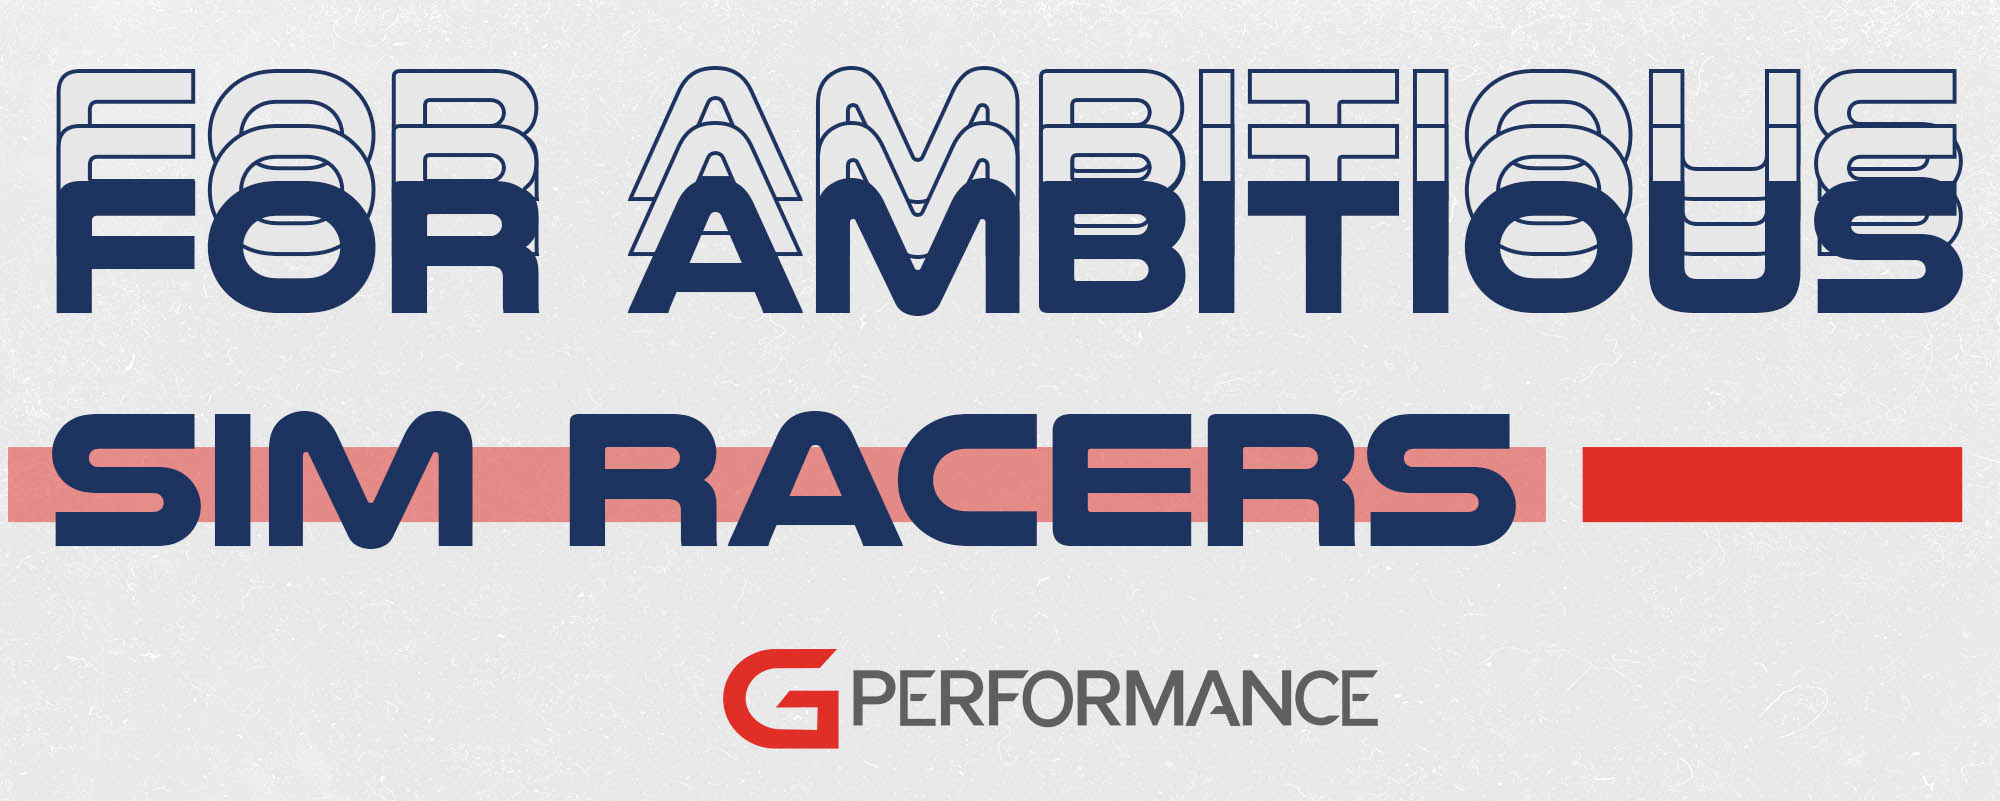 G-Performance-For-ambitious-sim-racers